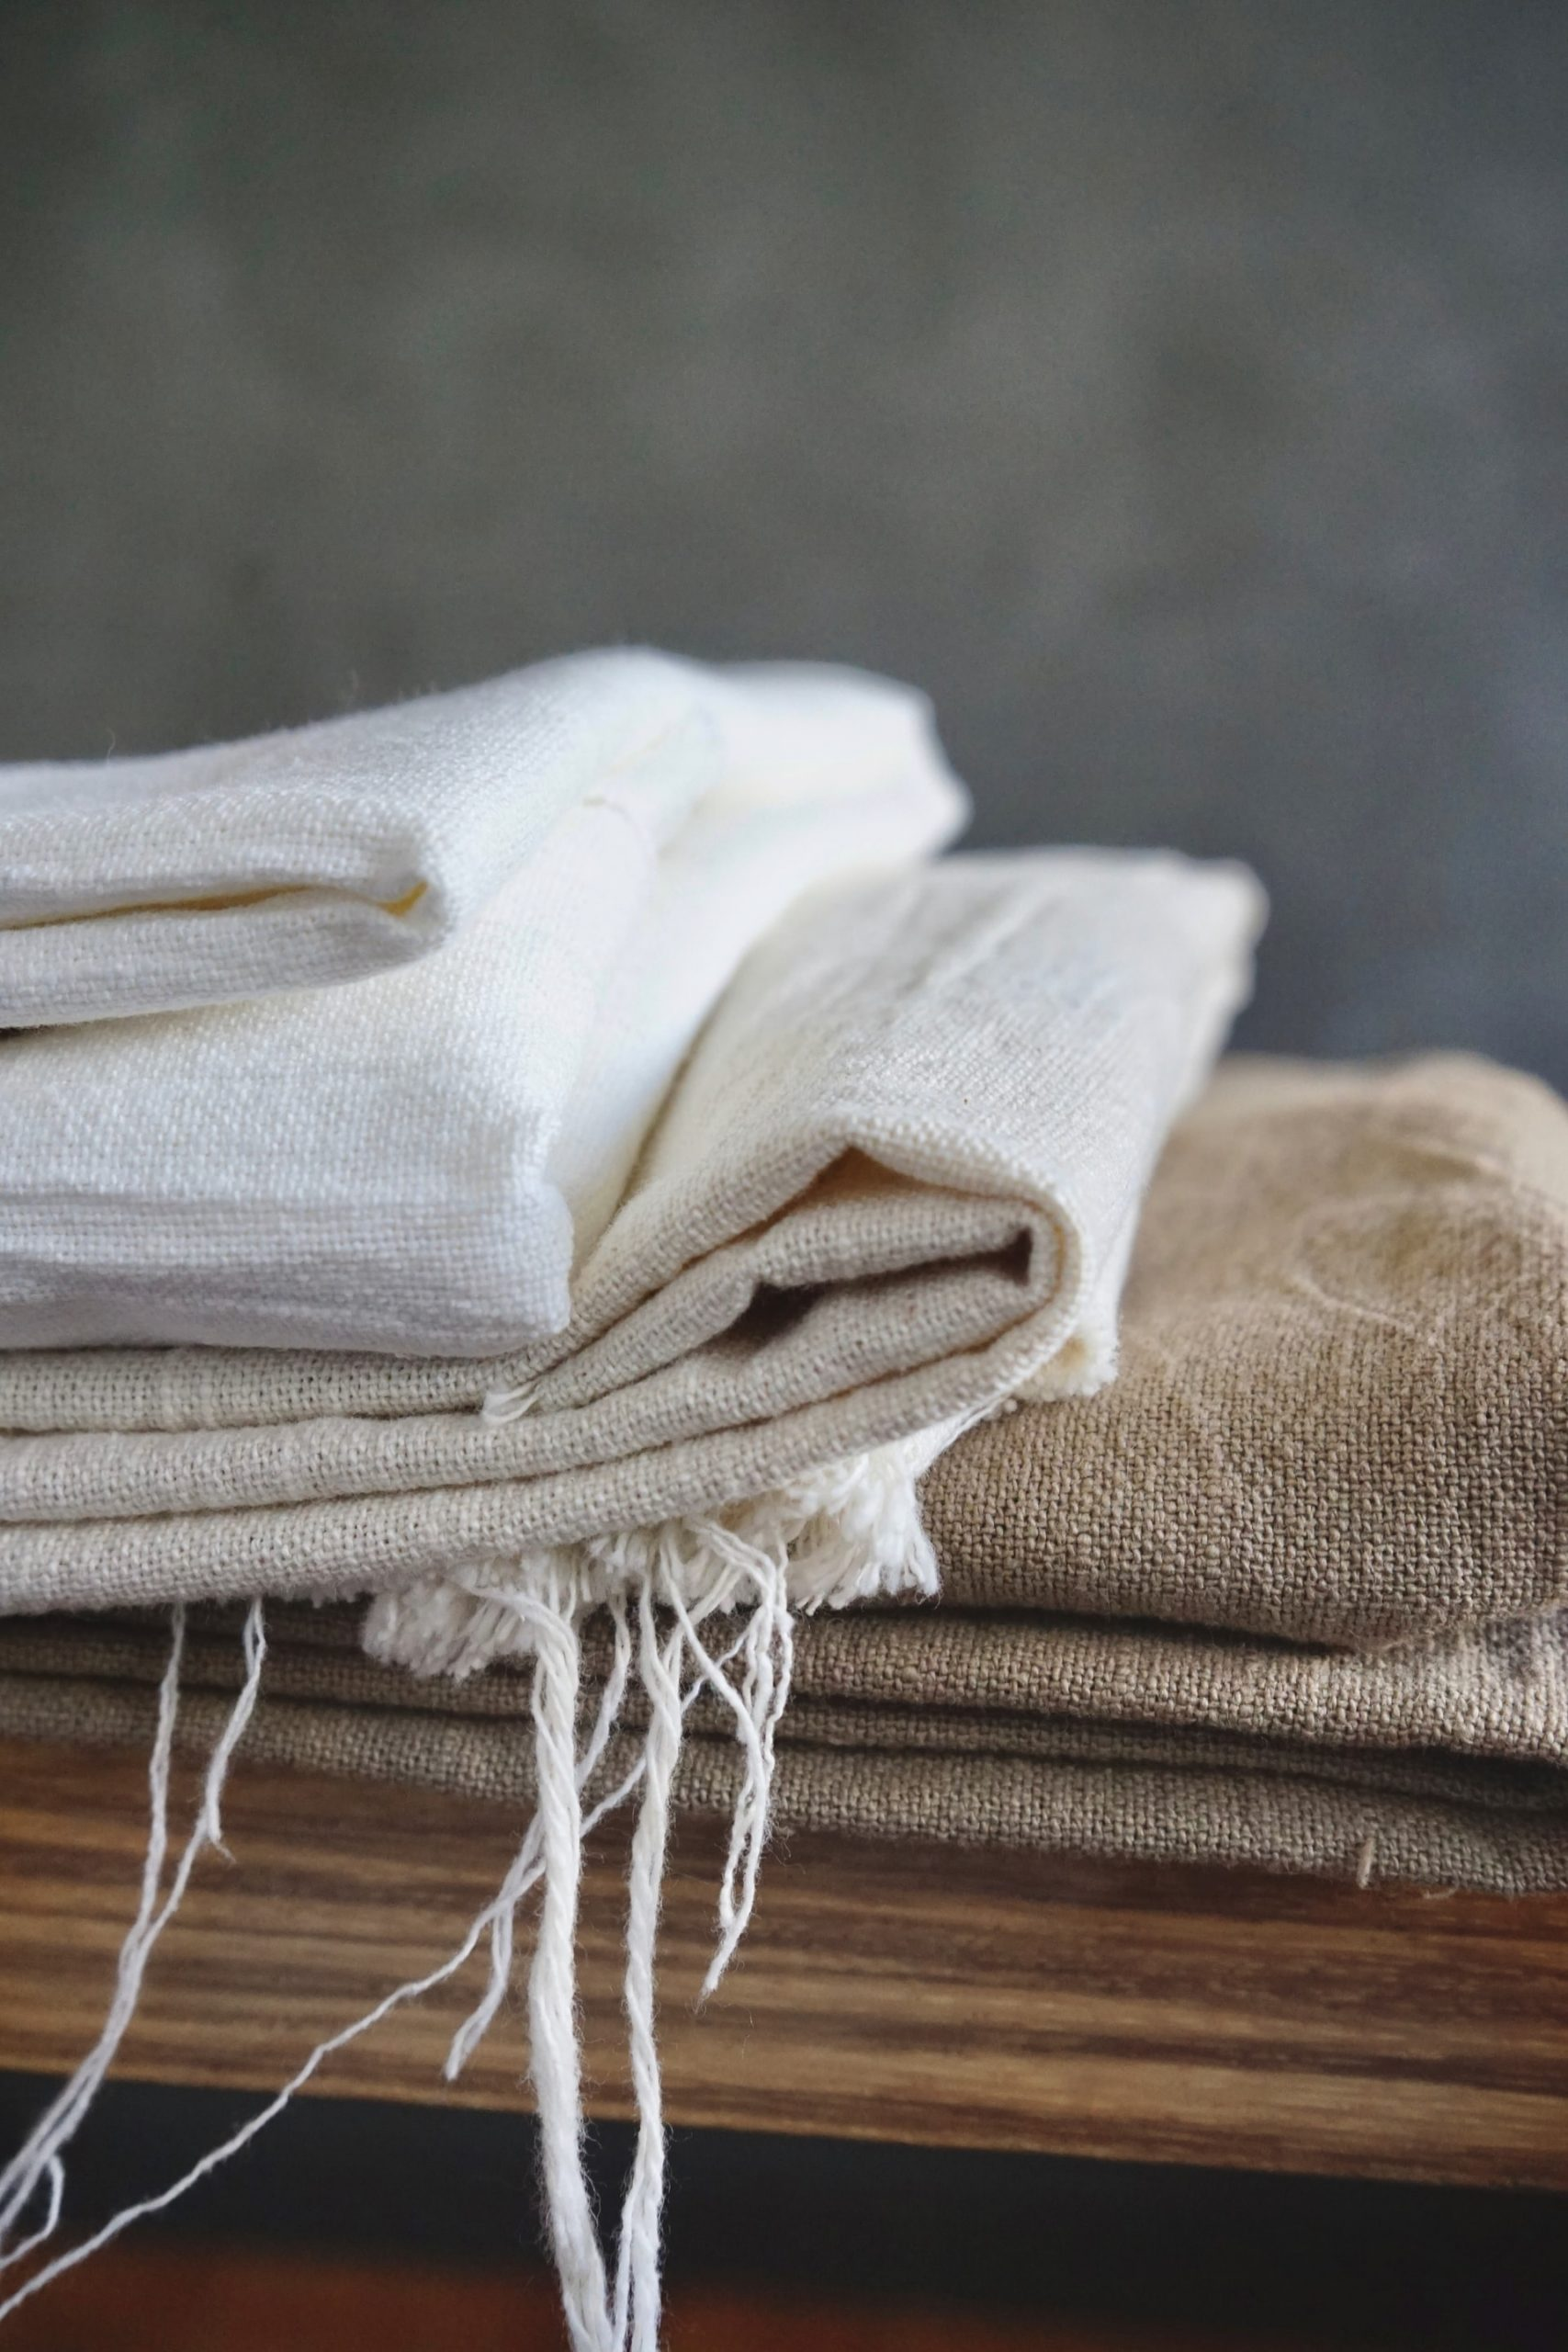 Stylish Design for Your Home: How Linen Is So Trending for Homeware